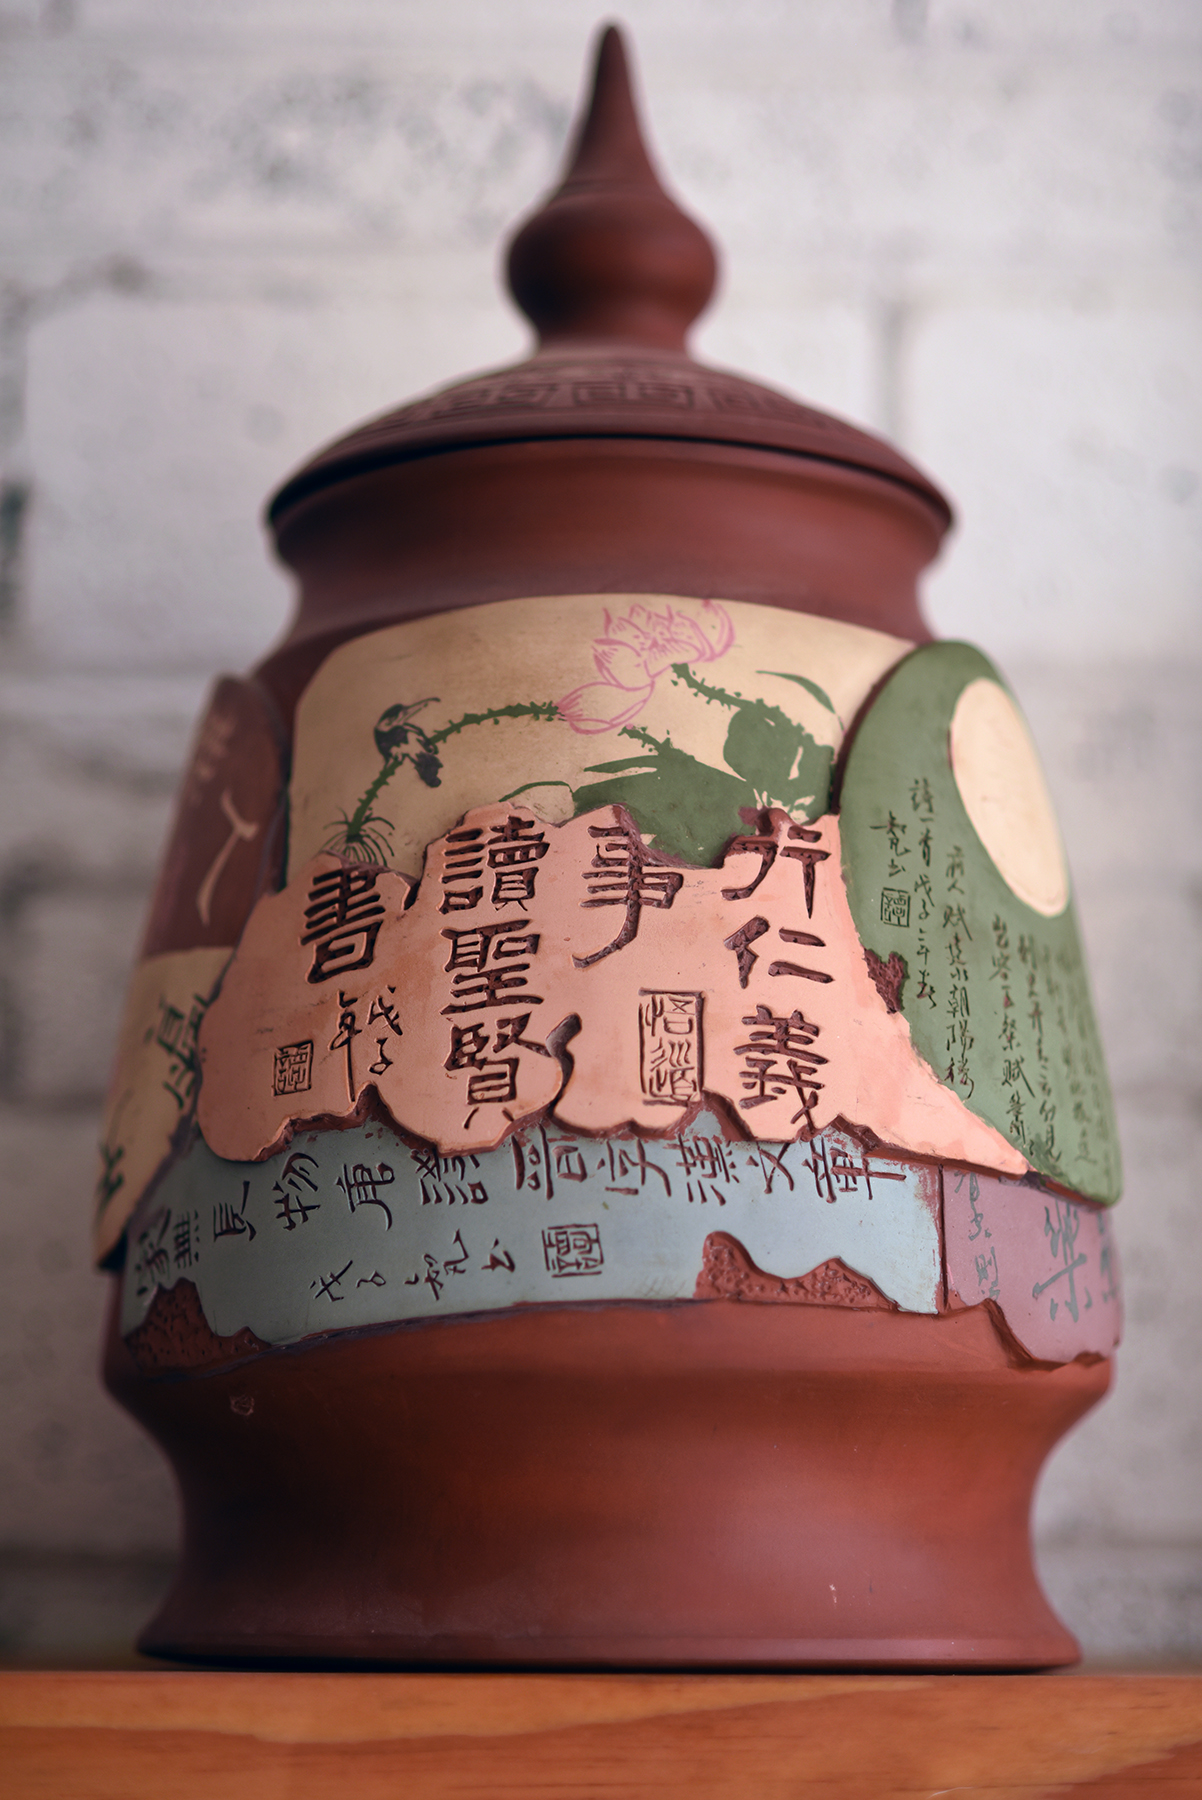 The work of Tan Zhi Fan, Inheritor of Purple Pottery Intangible Cultural Heritage, Jianshui, Yunnan Province.